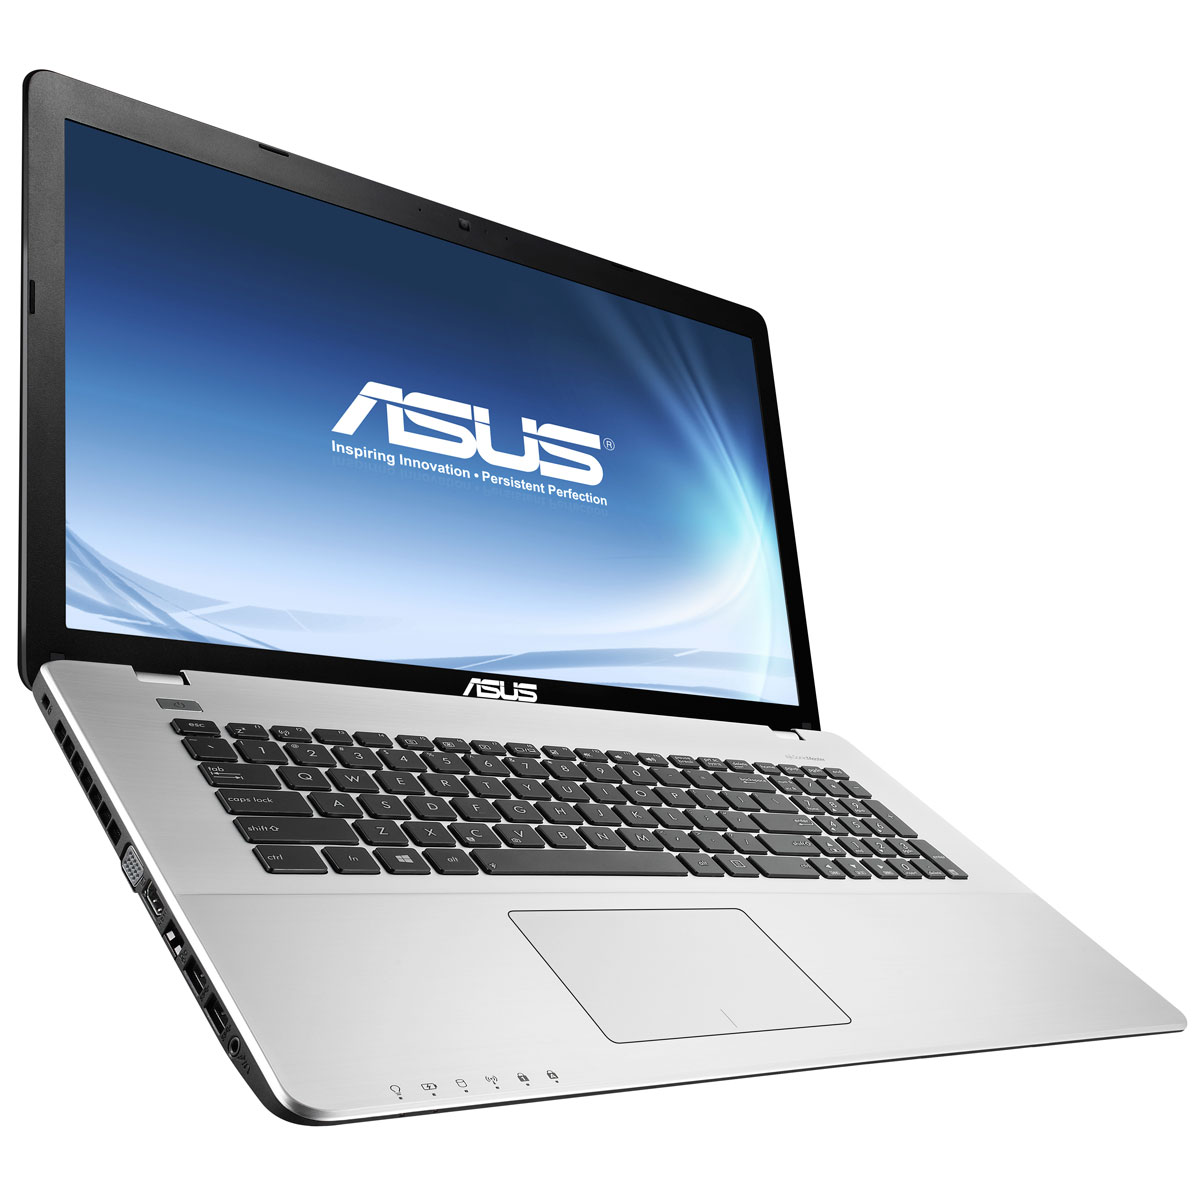 "PC portable ASUS R751LB-TY052H Intel Core i5-4200U 8 Go 1 To 17.3"" LED NVIDIA GeForce GT 740M Graveur DVD Wi-Fi N/Bluetooth Webcam Windows 8 64 bits (Garantie constructeur 1 an)"